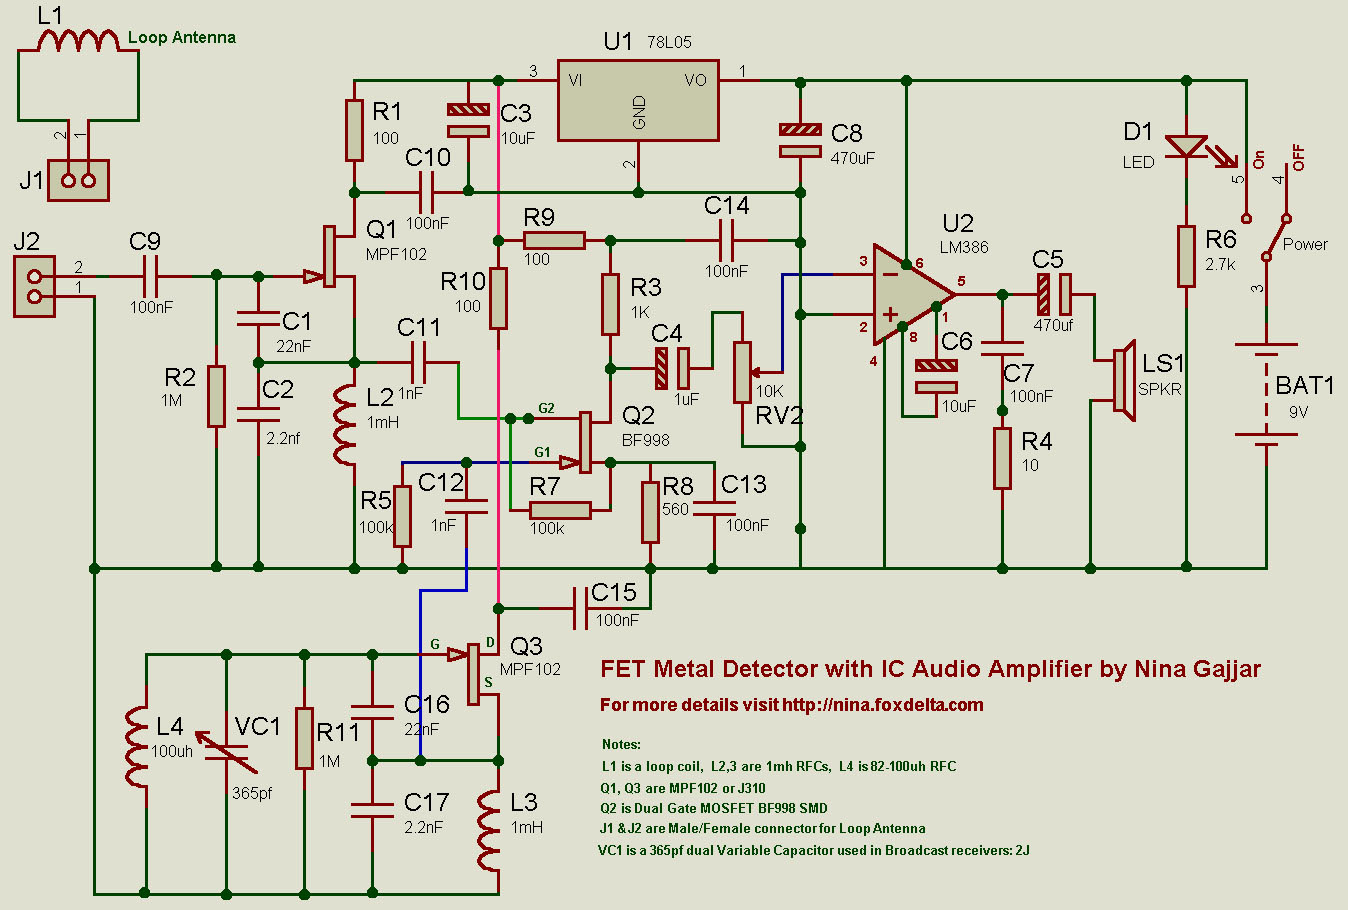 Detector Schematic Circuit Diagram Audio Amplifier Circuits Fet Metal By Nina Gajjar